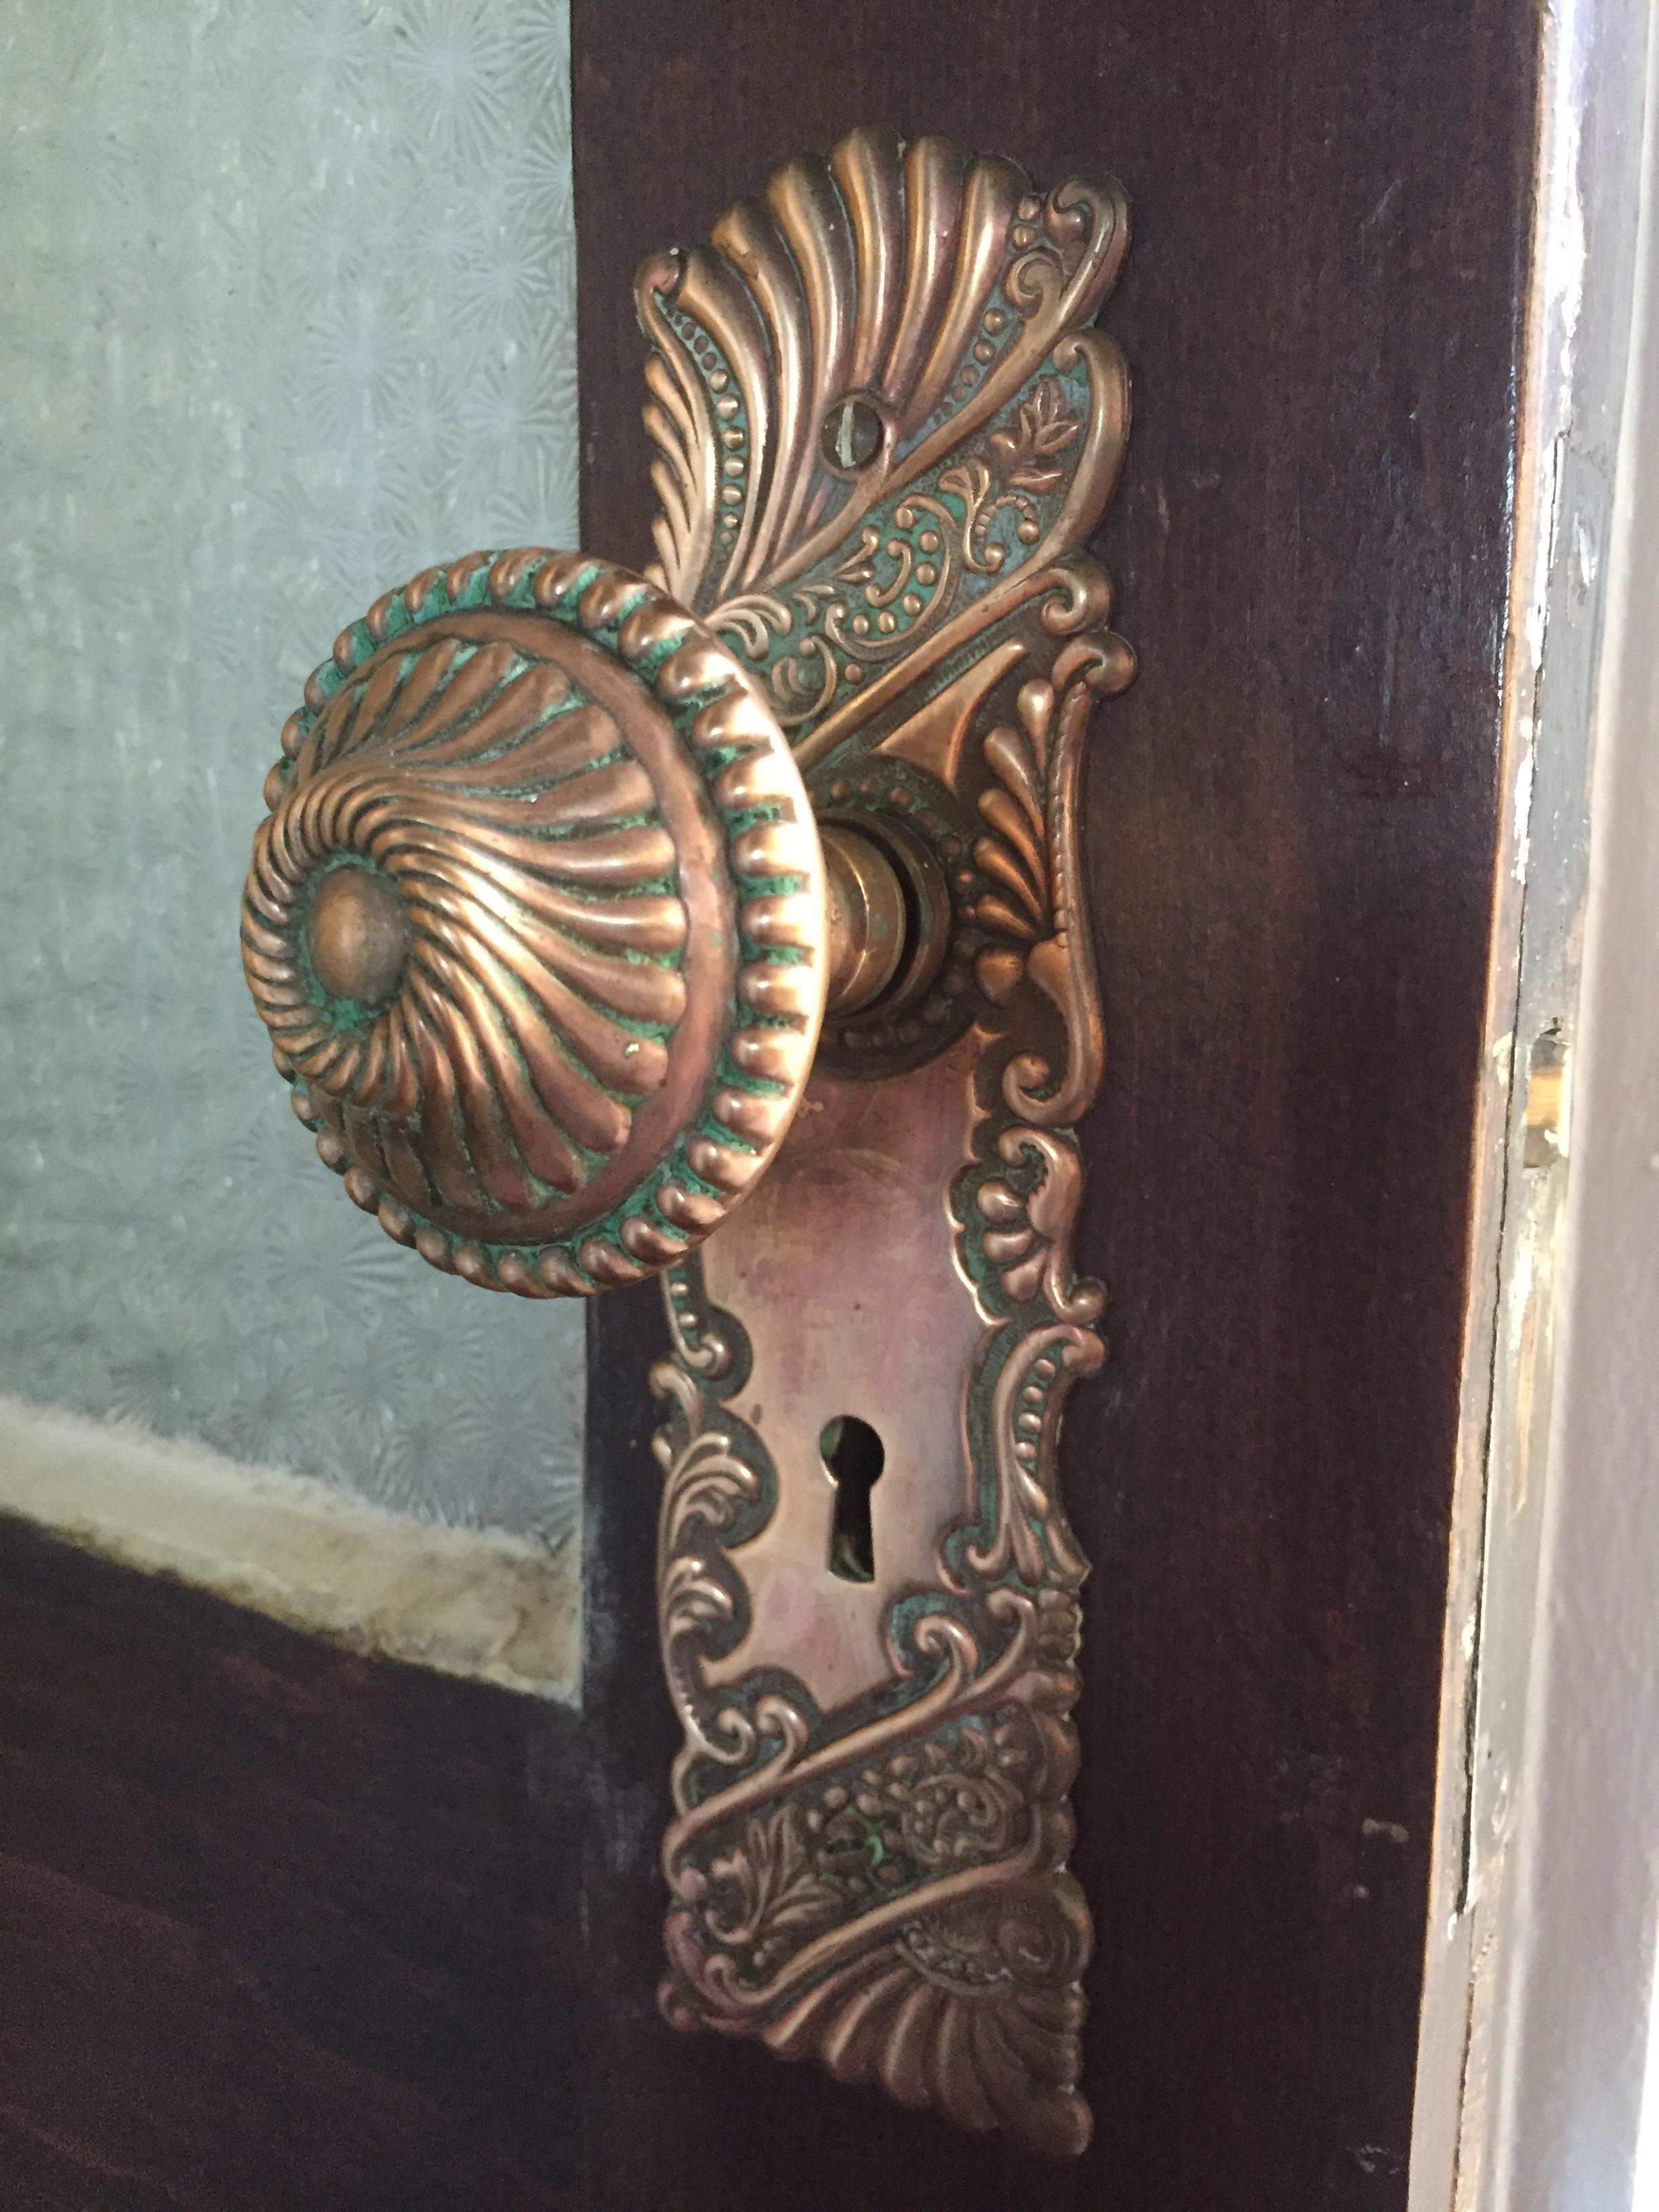 Memes One Of Many Interesting Door Knobs In My Home Built In 1896. Funny  Pictures